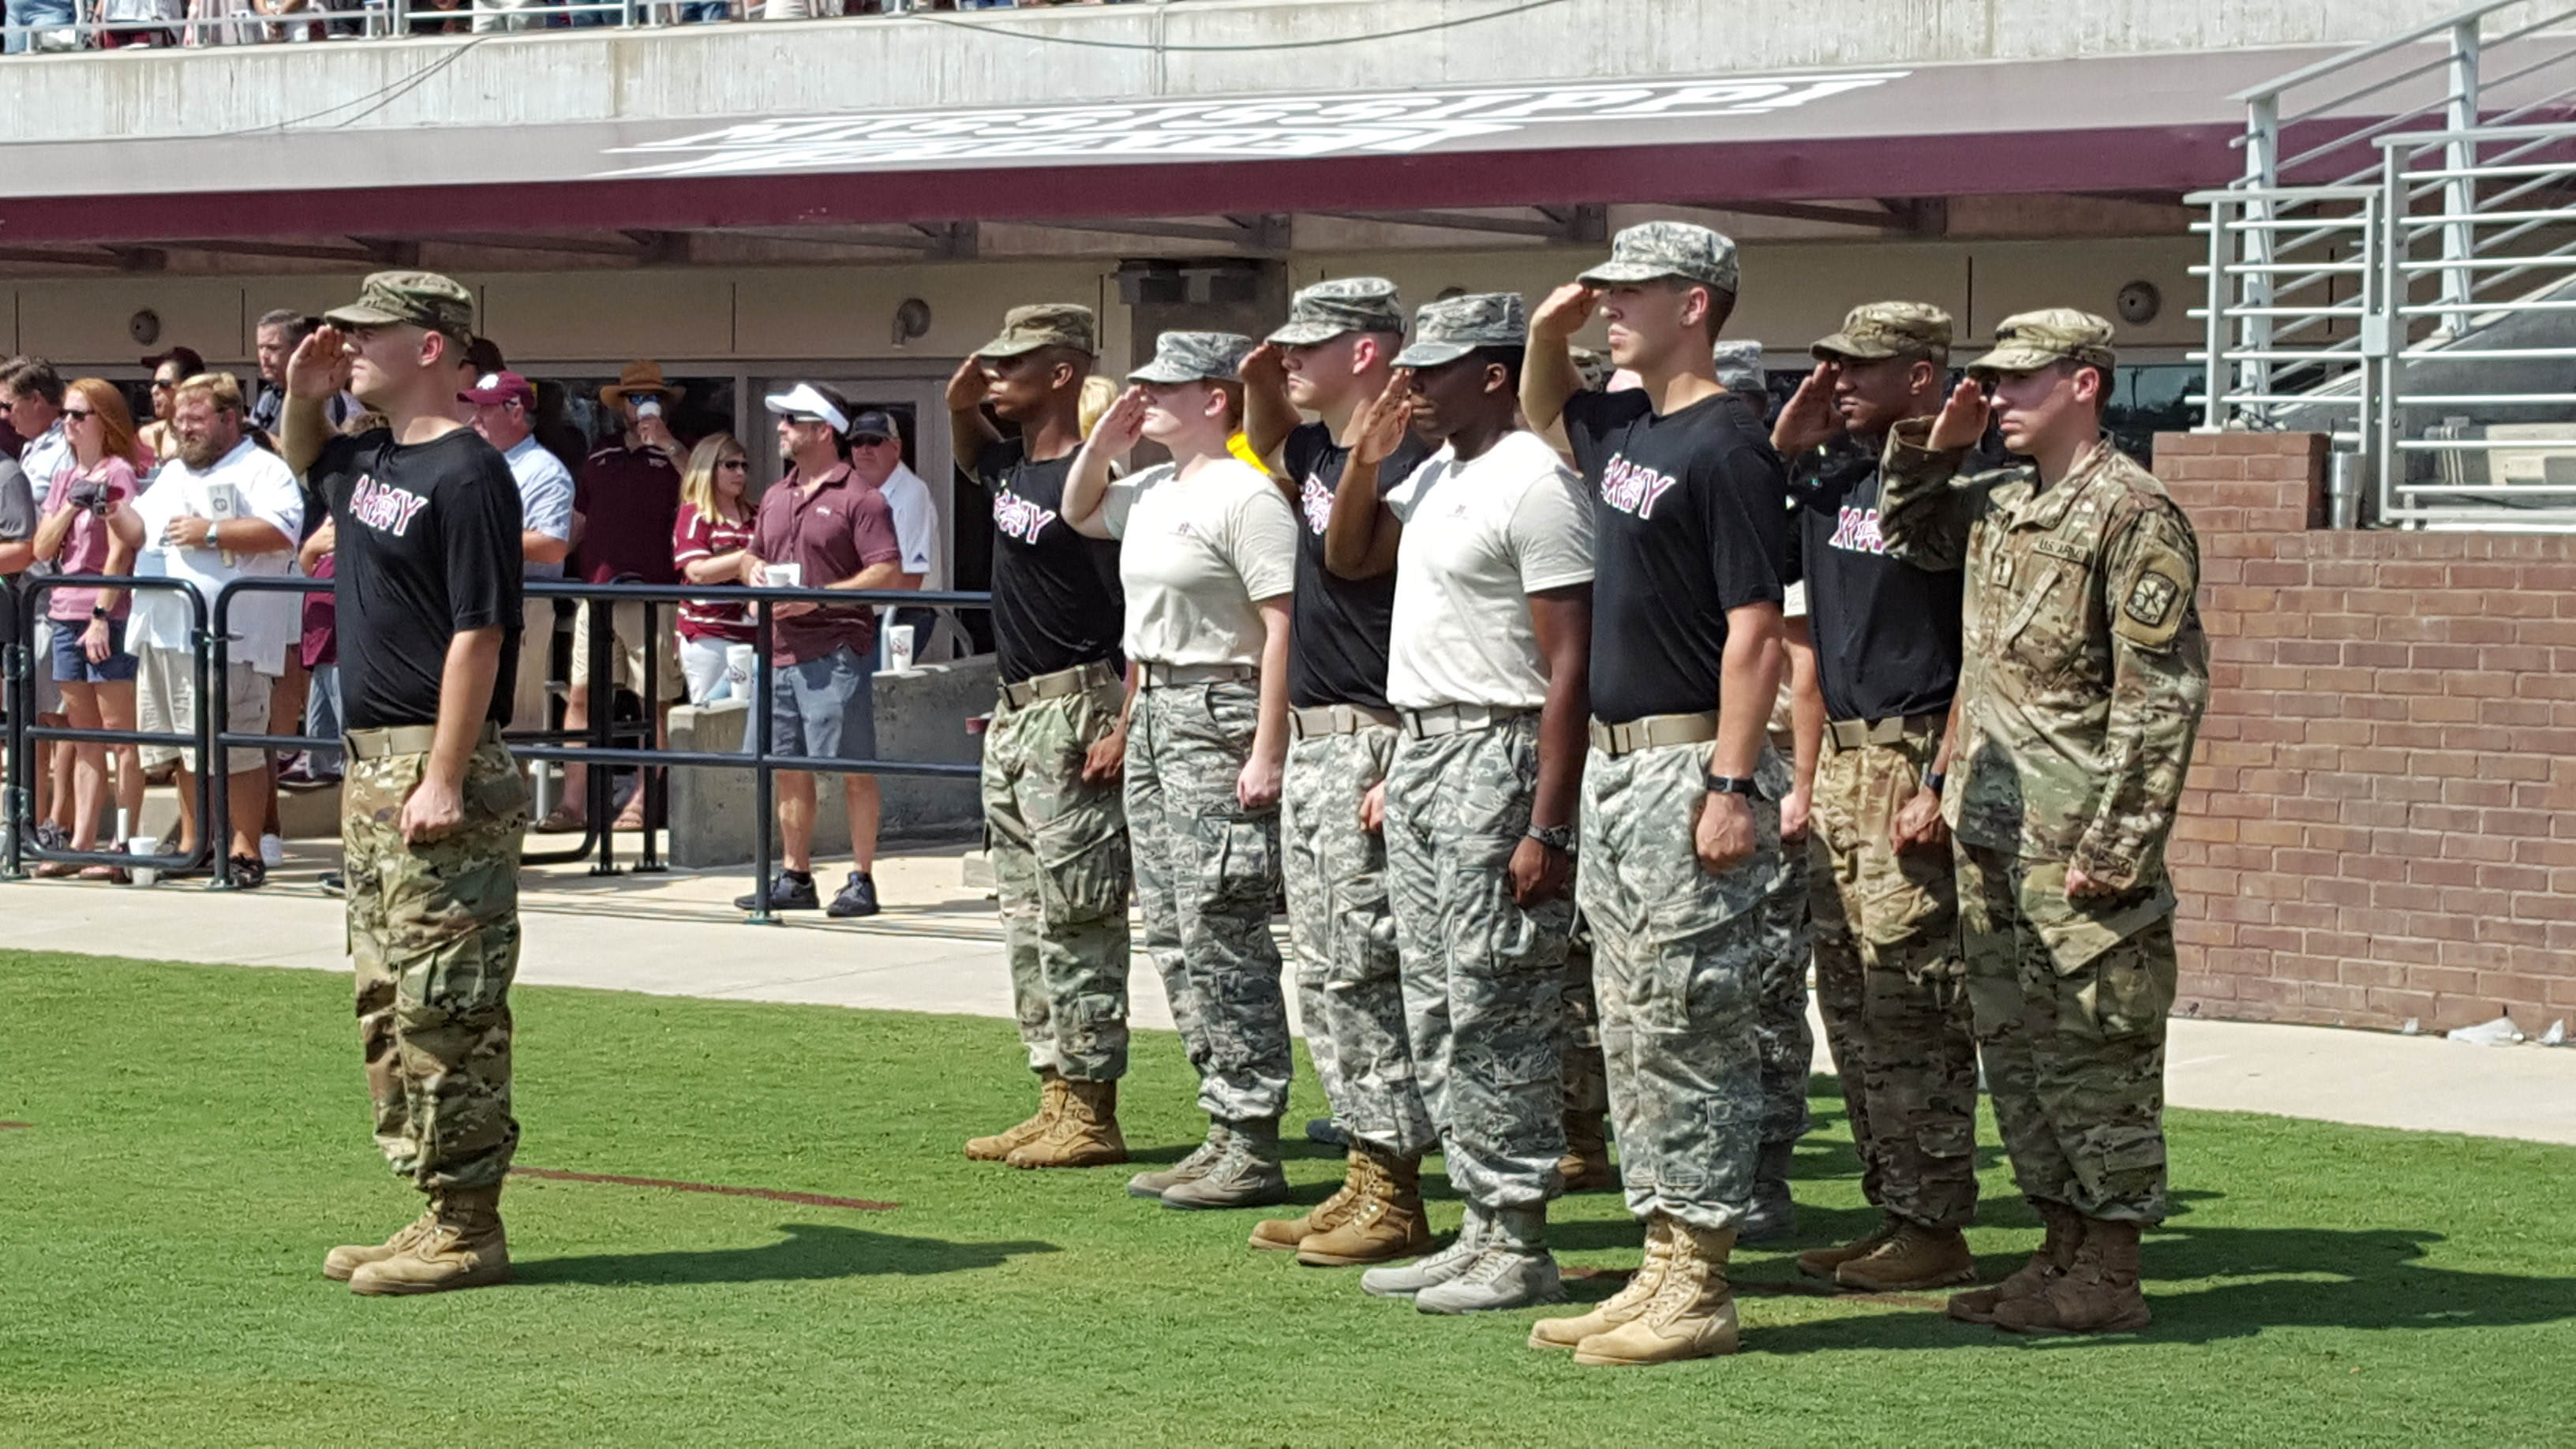 Army and Air Force cadets saluting